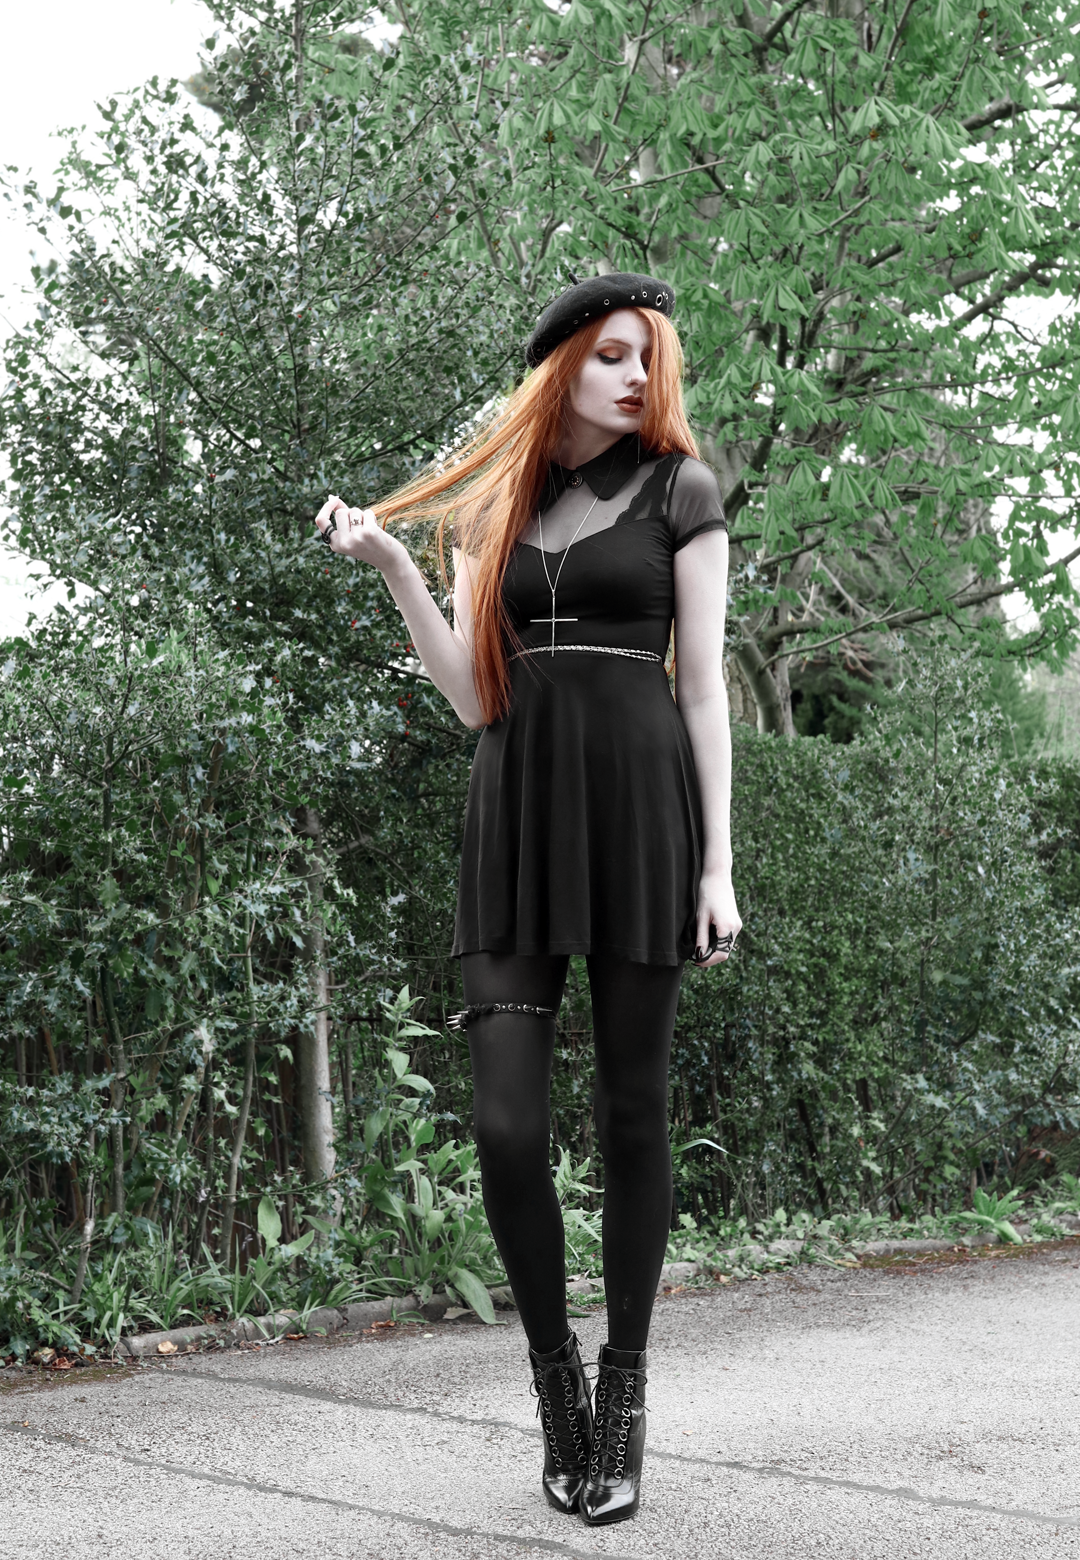 5 olivia emily asos eyelet beret, killstar dana dress, kiki minchin necklace, spiked garter, saint laurent slp ysl booties